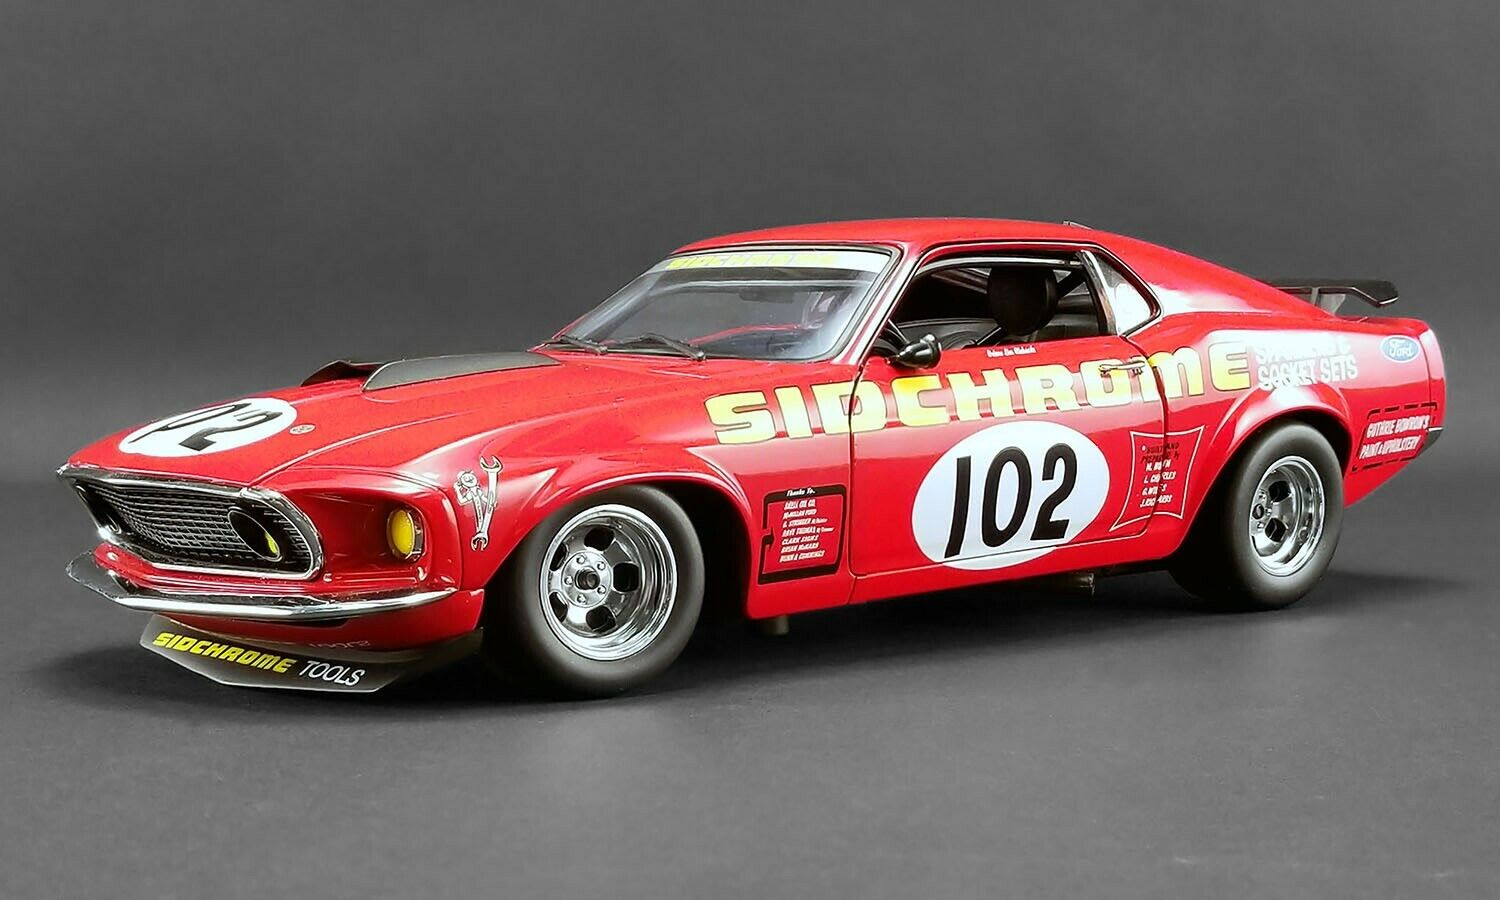 ACME 1 18 Sidcromo 1969 Trans Am Mustang rosso Diecast modellolo auto A1801829